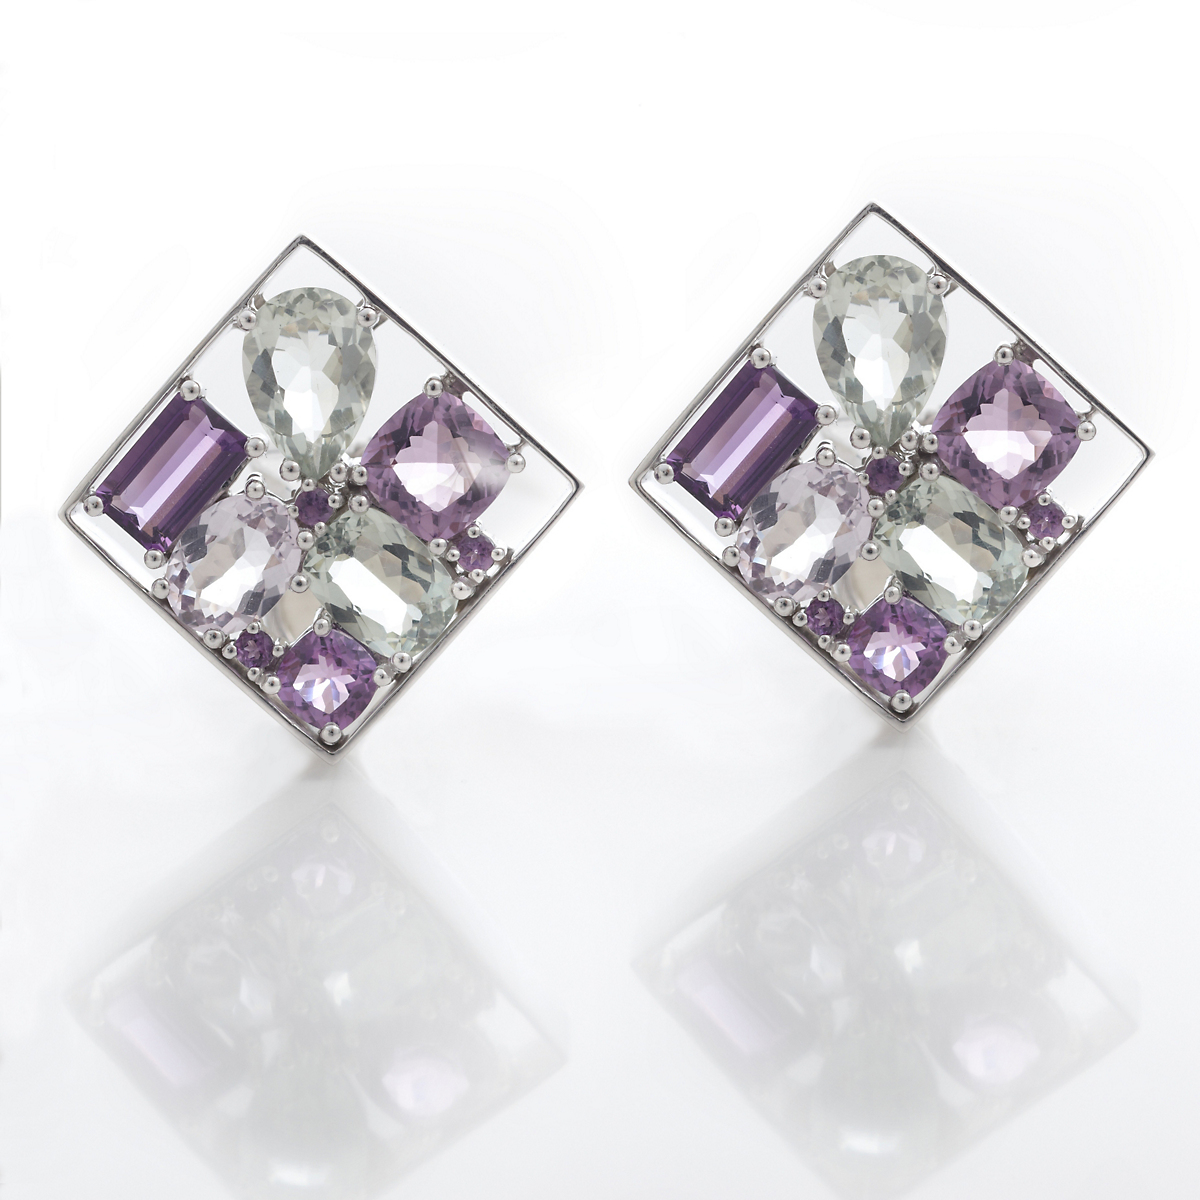 Gump's Amethyst & Green Quartz Silver Earrings